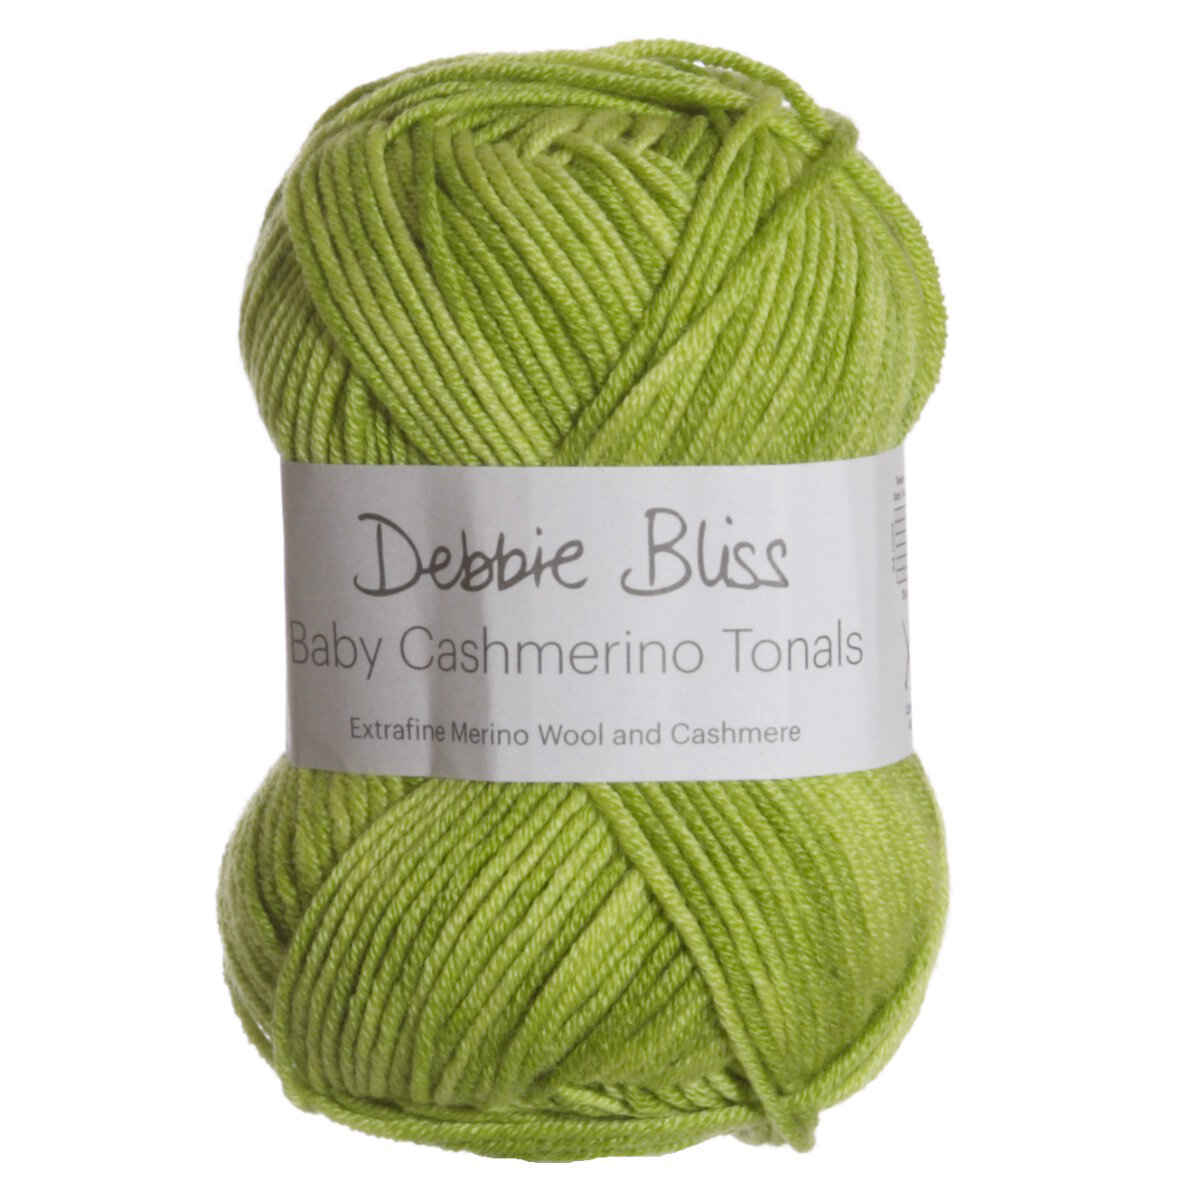 Debbie Bliss Baby Cashmerino Tonals Yarn - 04 Lime at Jimmy Beans Wool